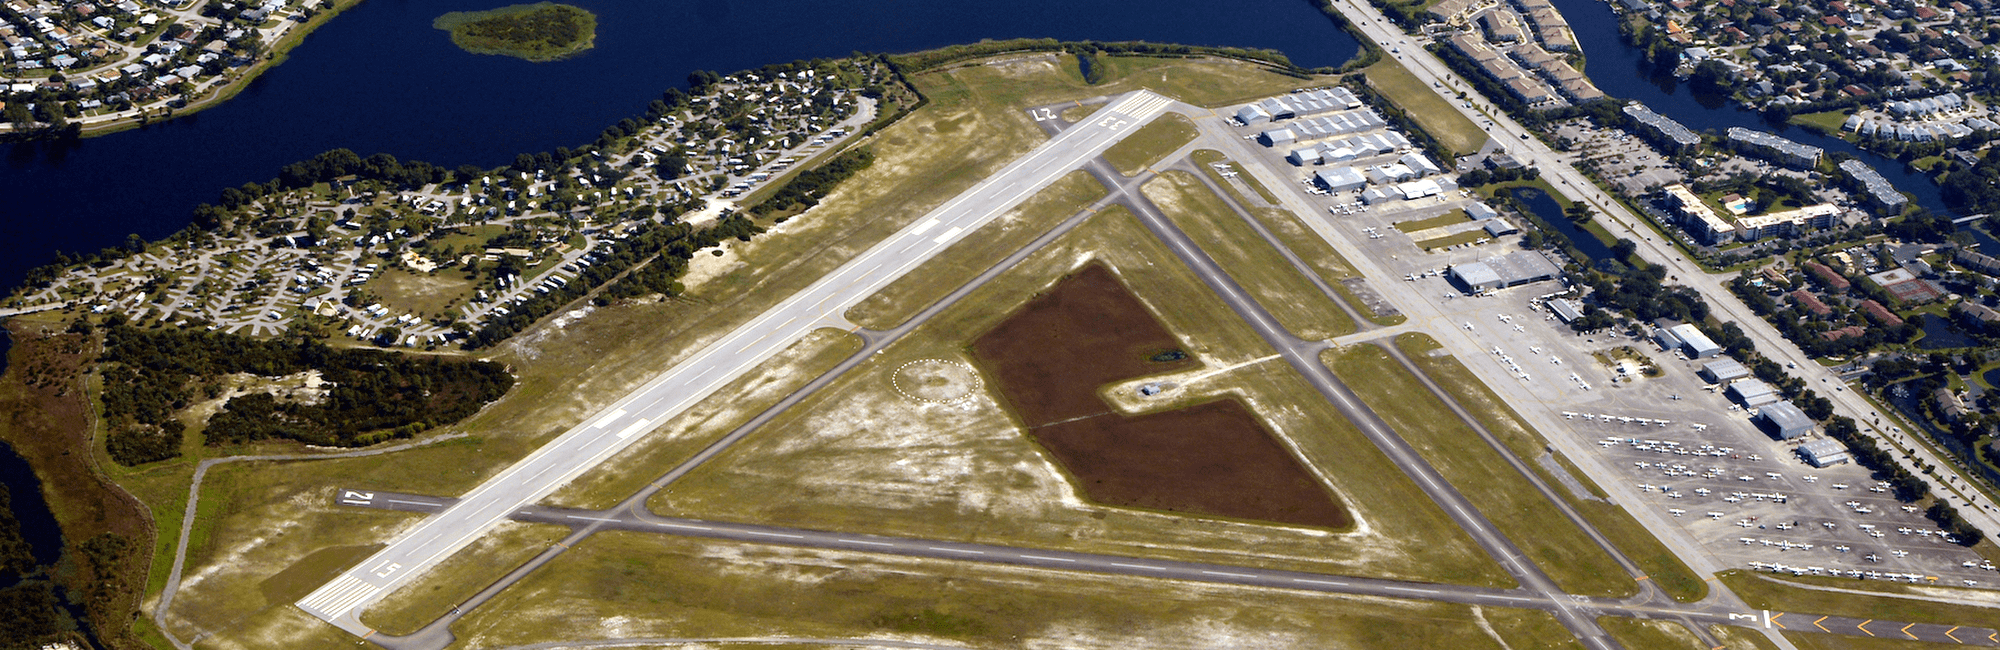 Flughafen west-palm-beach-pbi